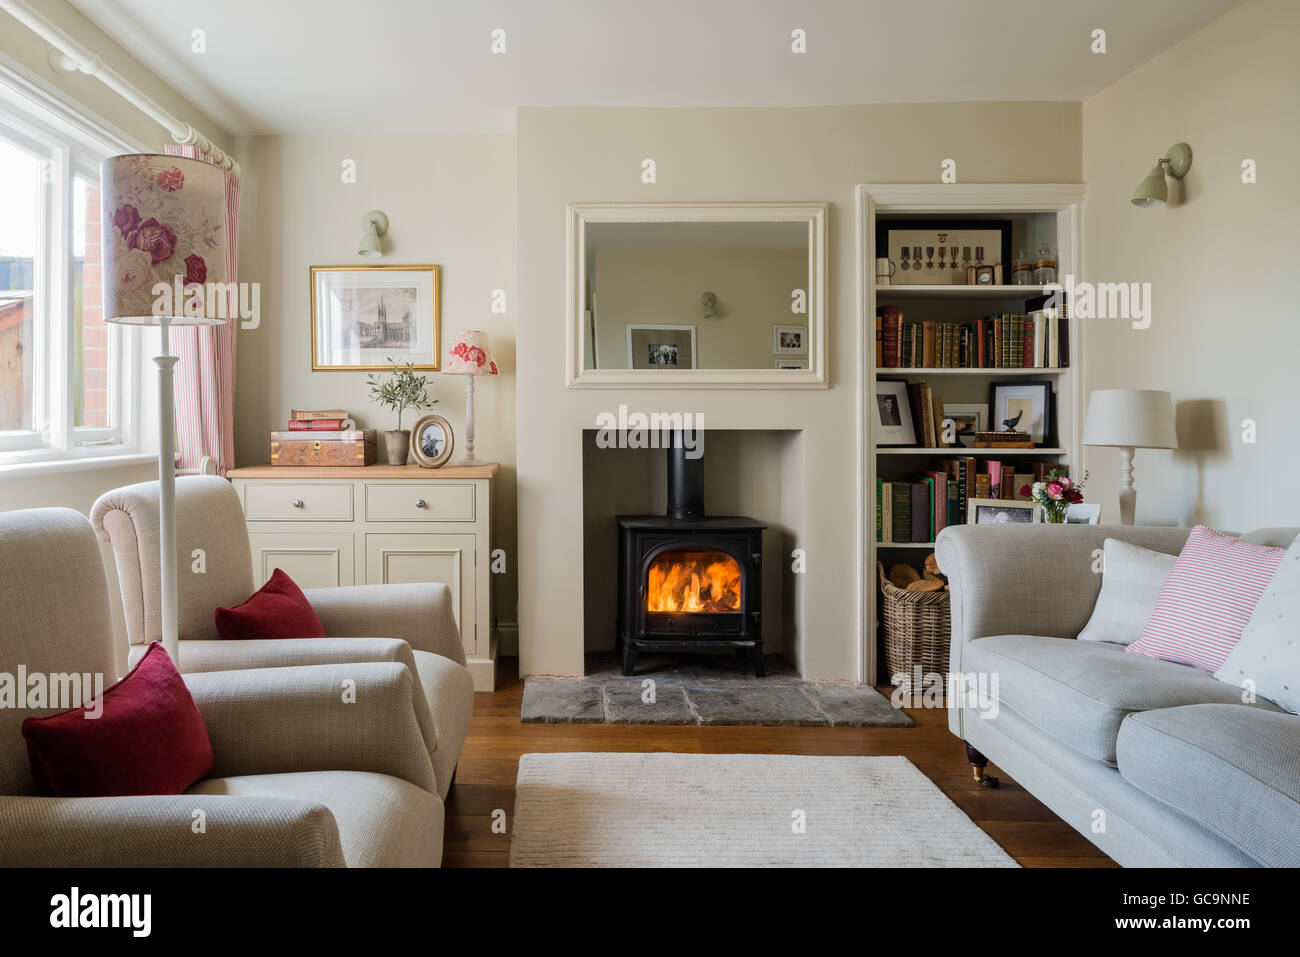 living room with log burner interior design photos india cosy cottage sitting wood burning stove and linen stock upholstered sofa